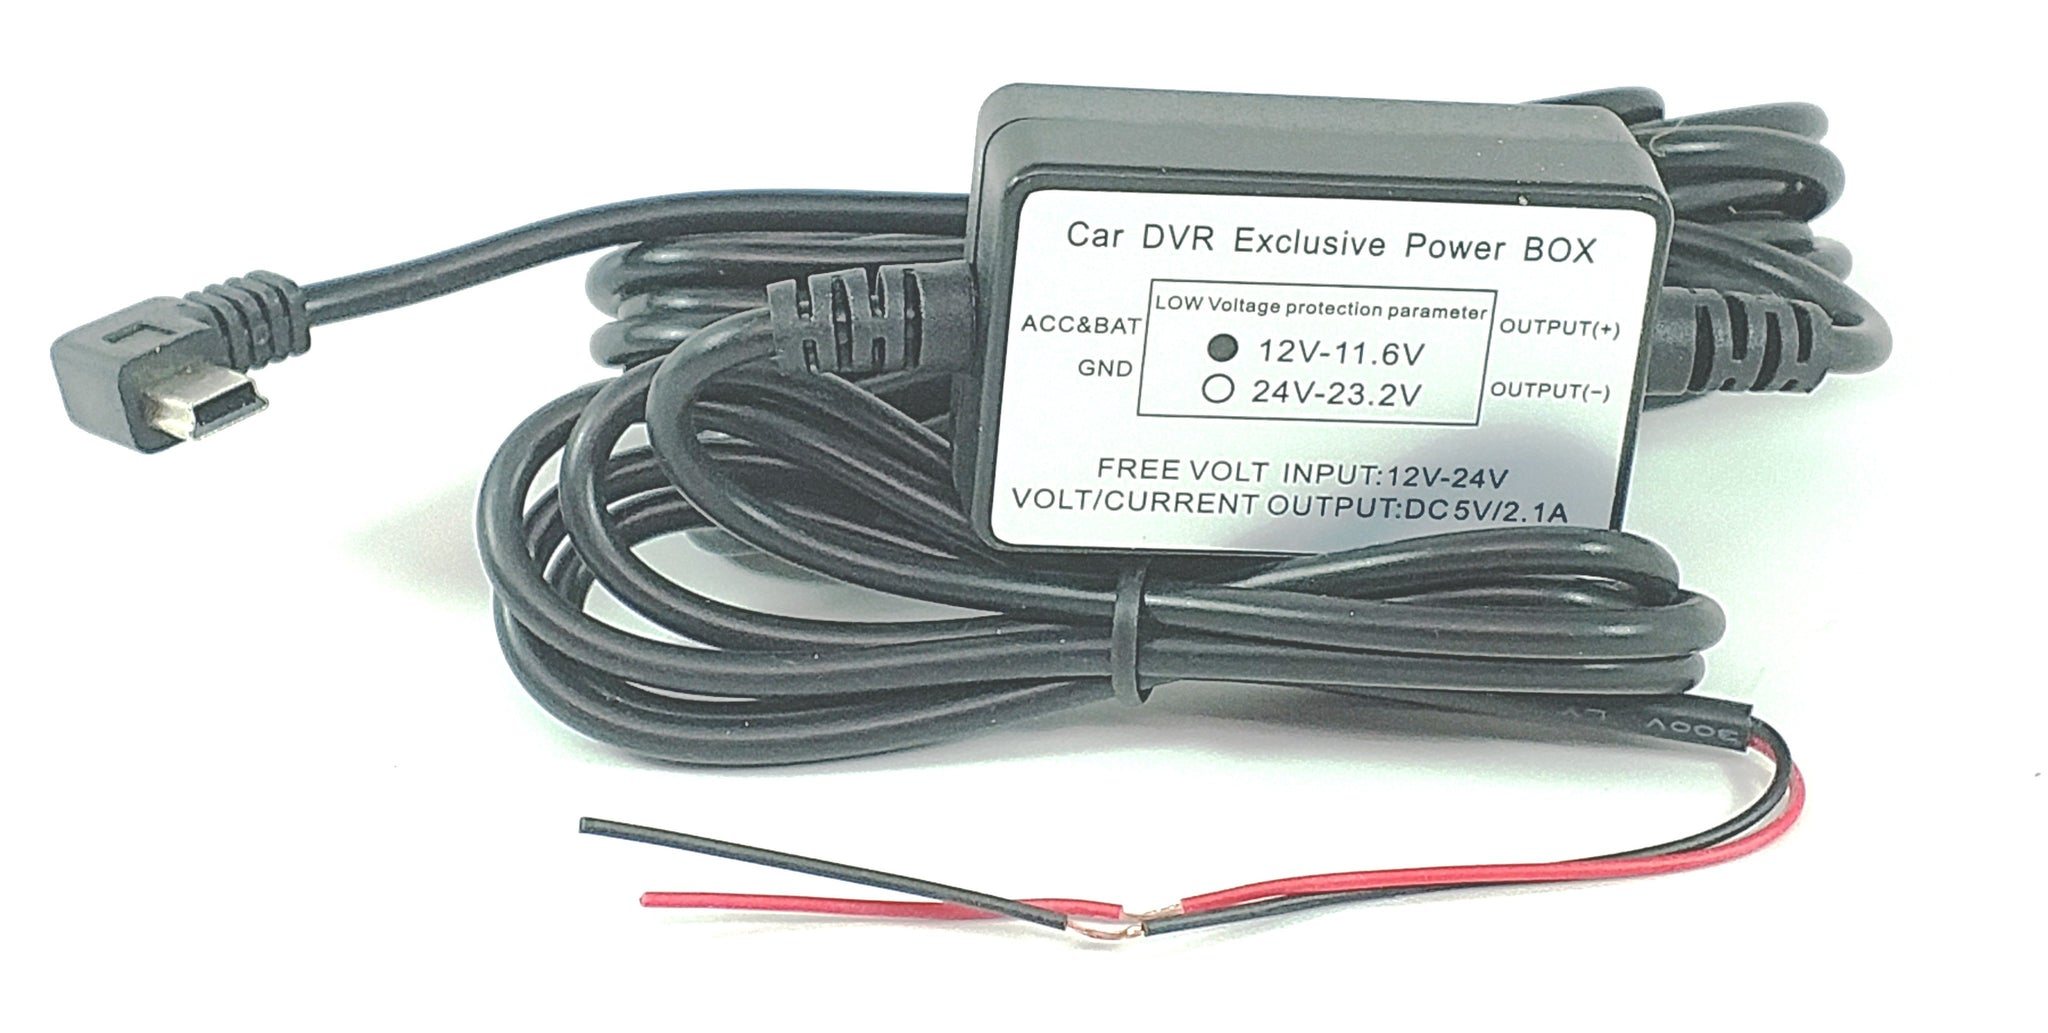 12 Volt Hard Wire Power Cable for Dash Cams! Replaces Cig Lighter Charger! Installs in Minutes!